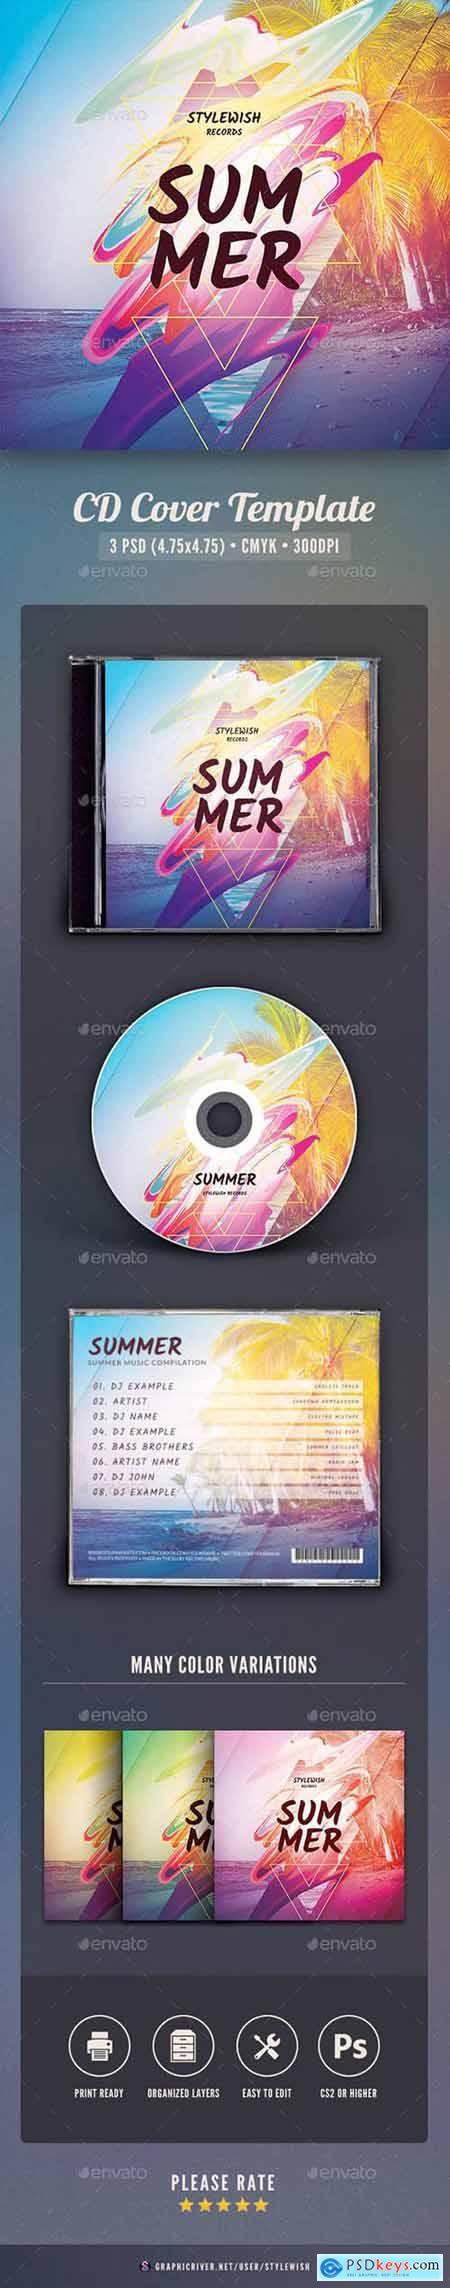 Graphicriver Summer CD Cover Artwork